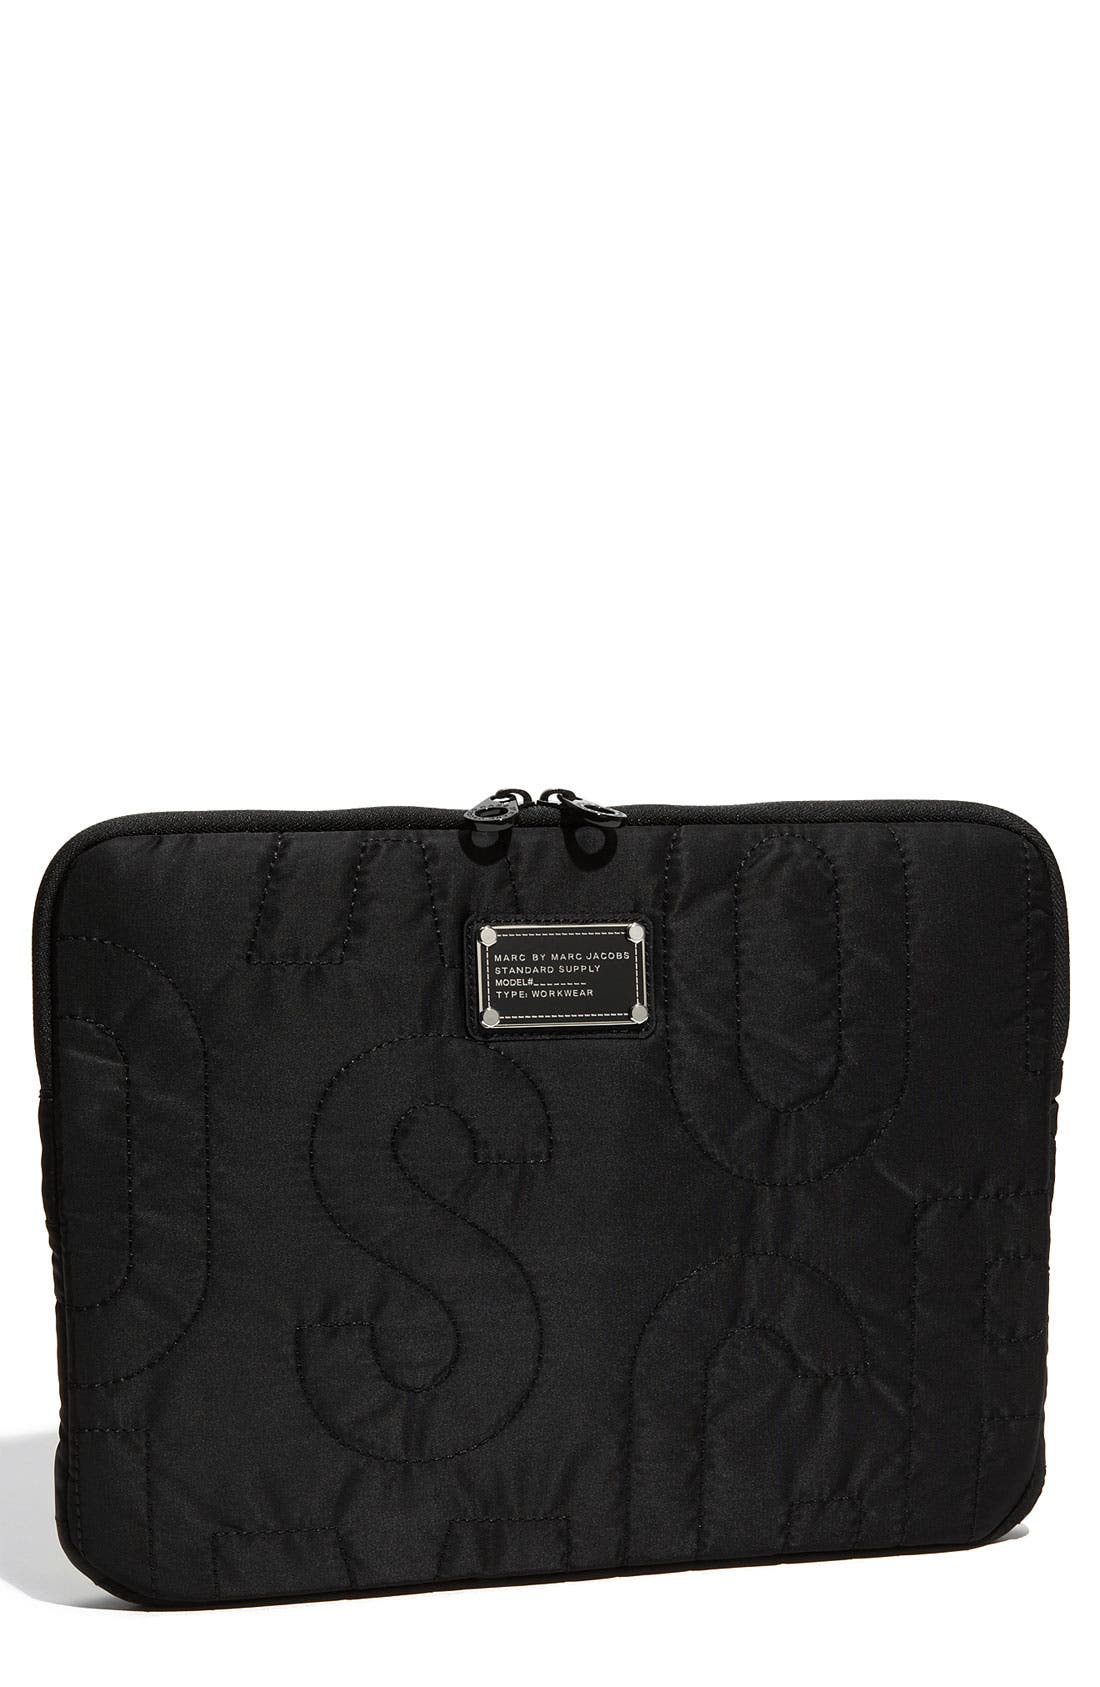 Alternate Image 1 Selected - MARC BY MARC JACOBS 'Pretty Nylon' Computer Case (13 Inch)